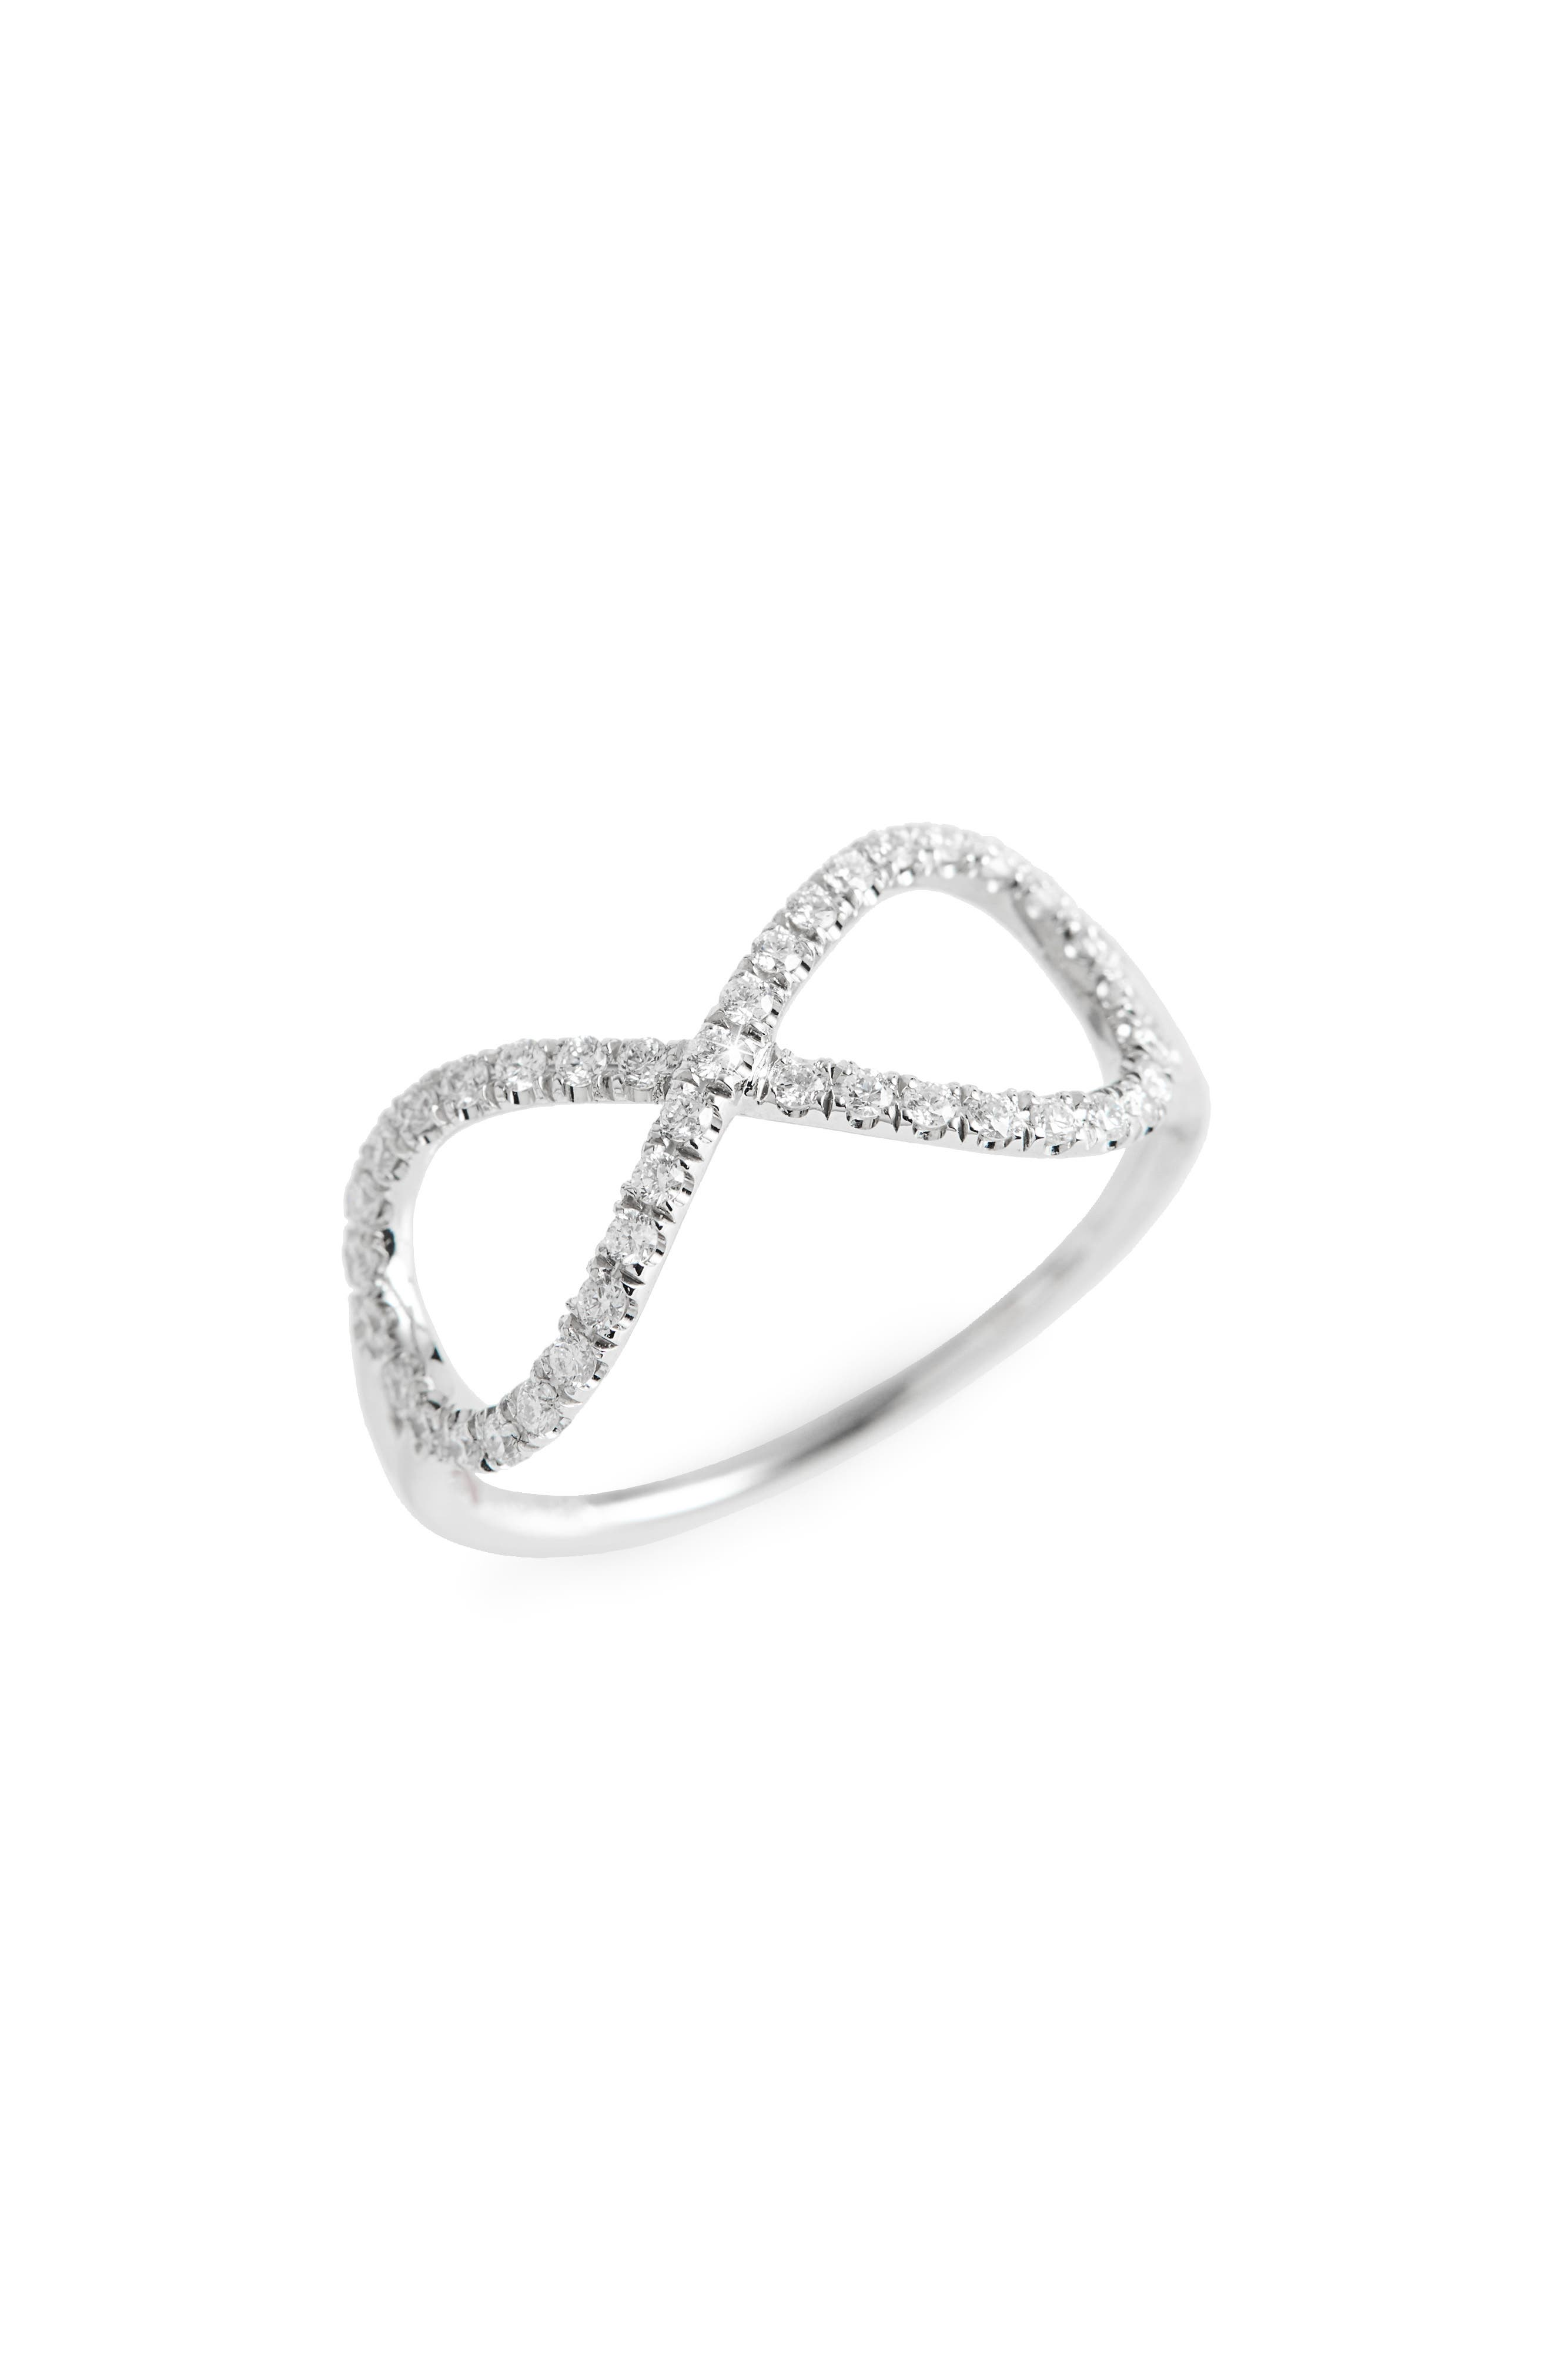 ROBERTO COIN Diamond Infinity Ring (Nordstrom Exclusive) in White Gold